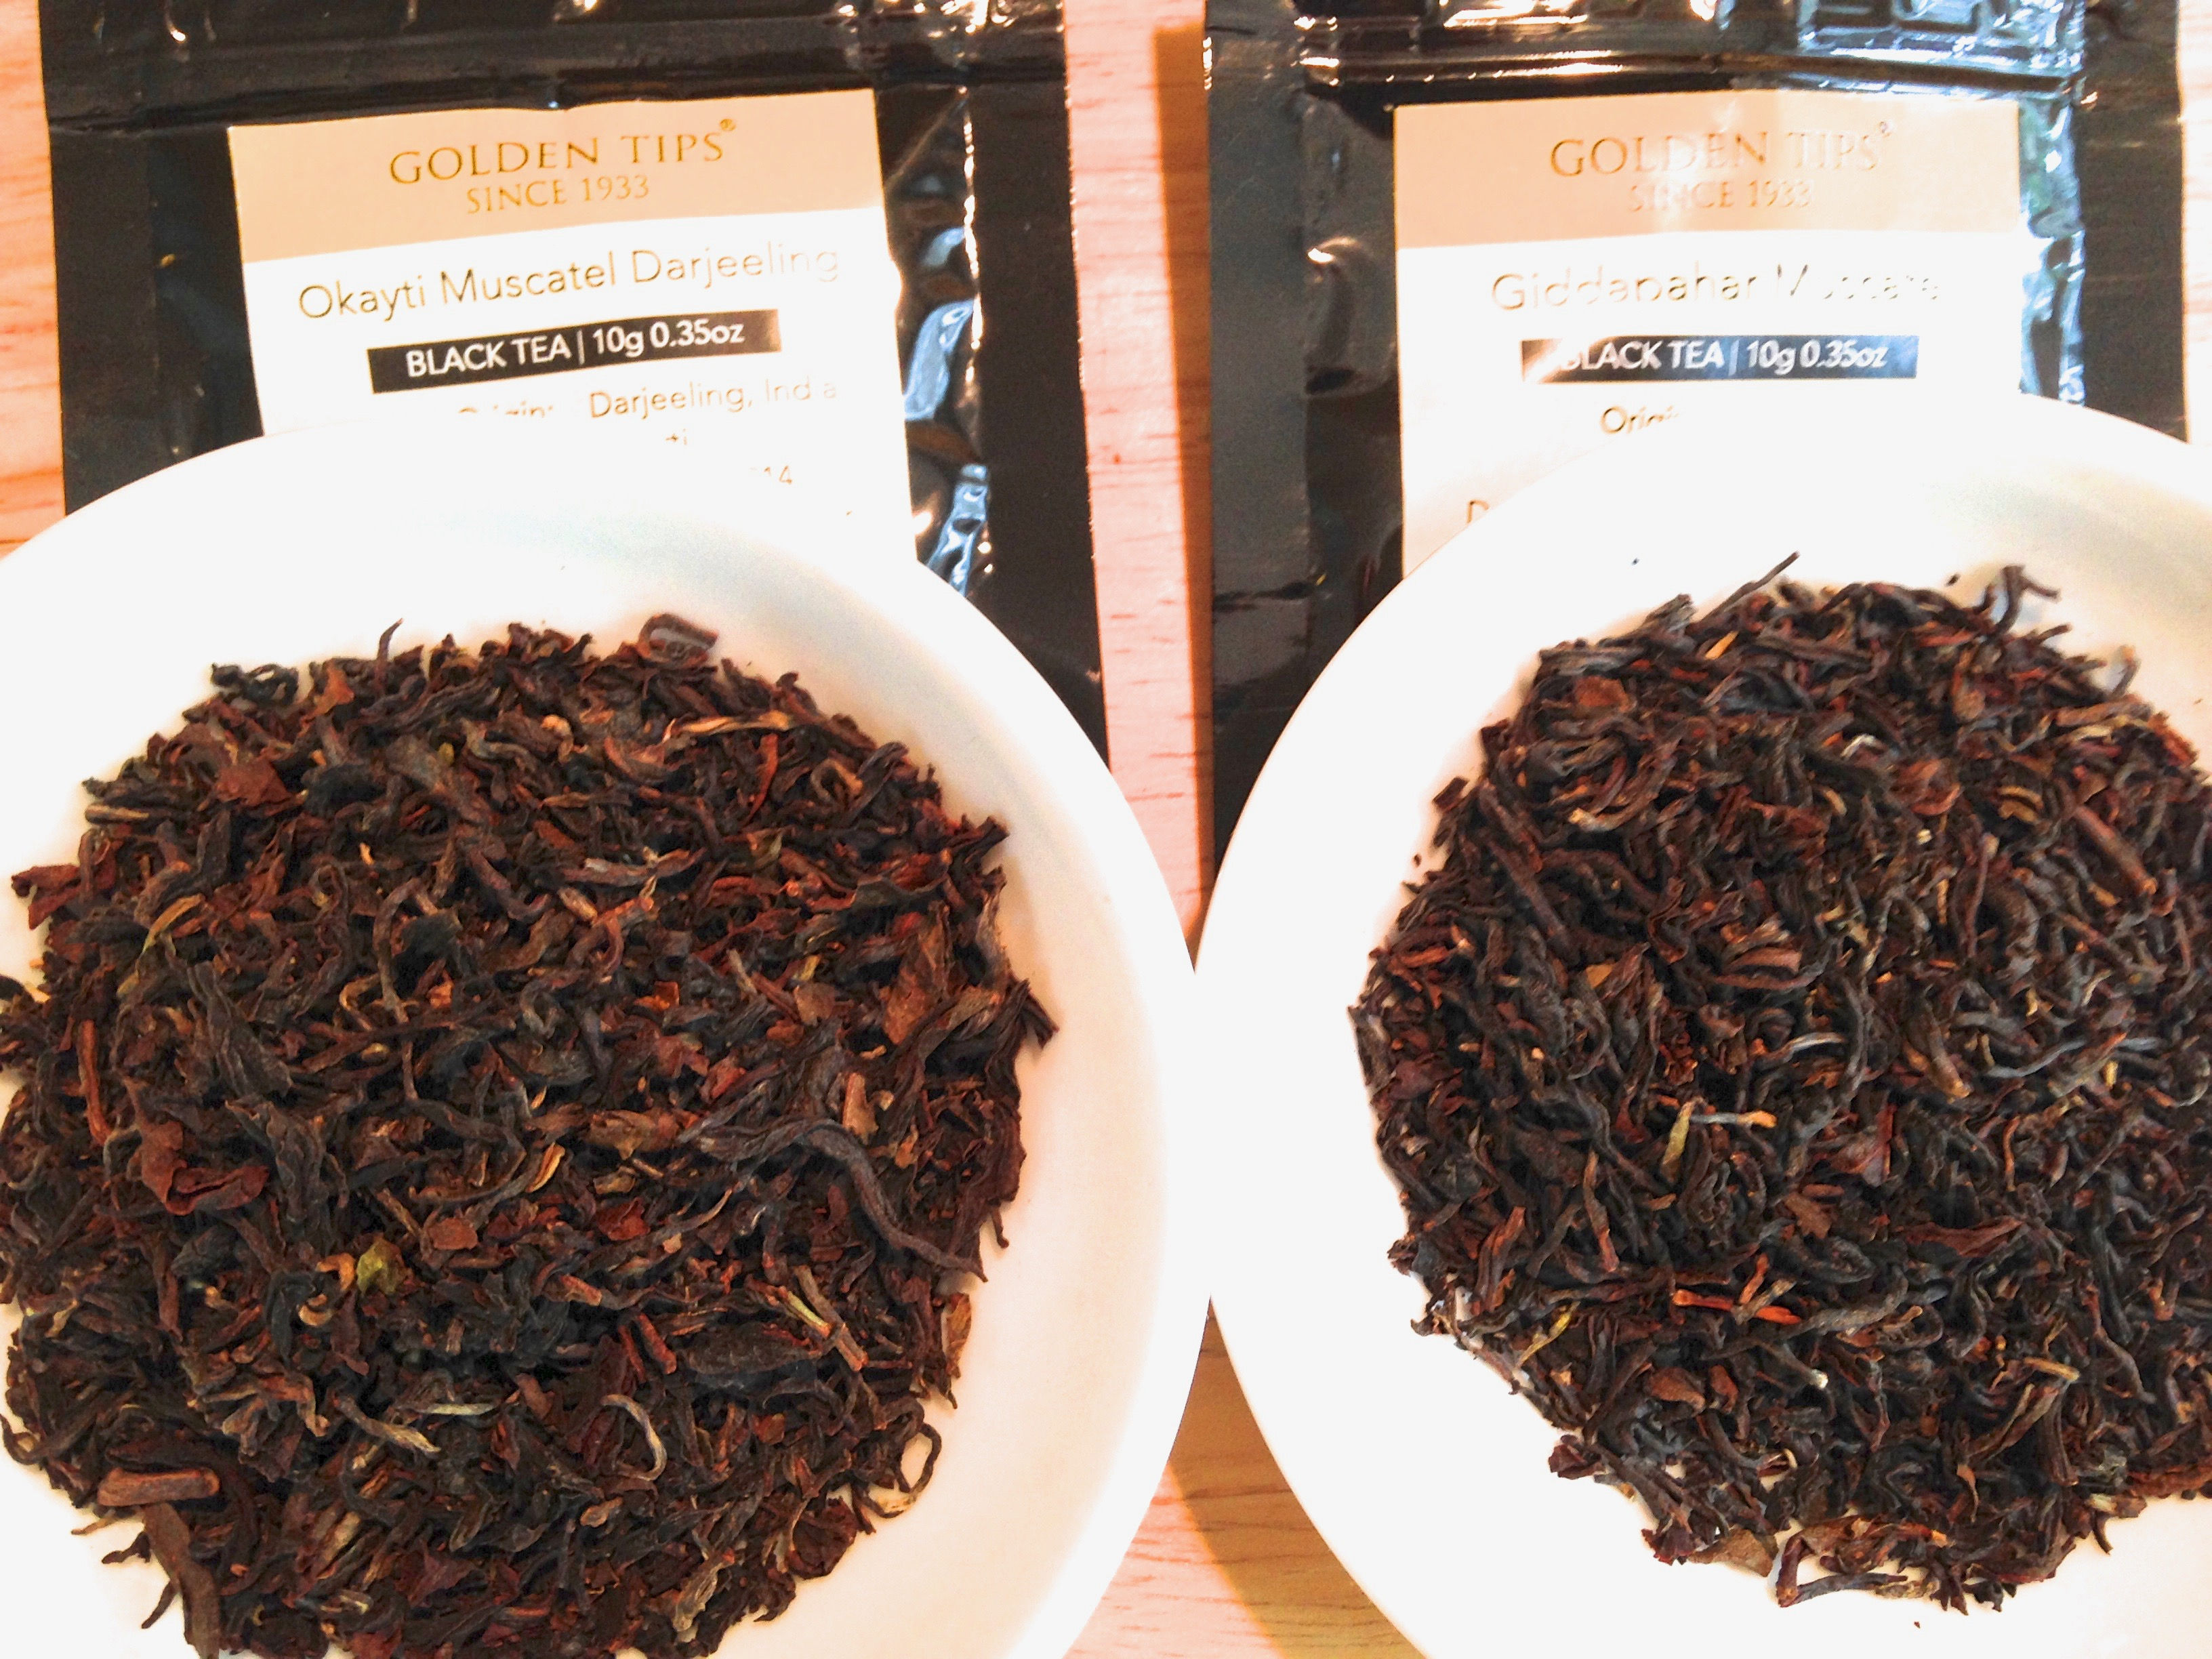 Darjeeling Samples